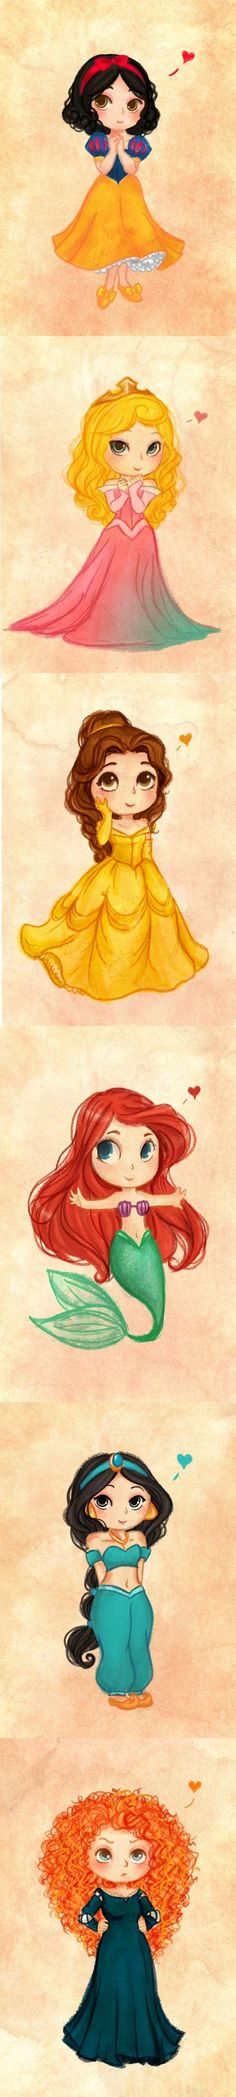 Who is it? [Lookit. These princesses are so precious!]